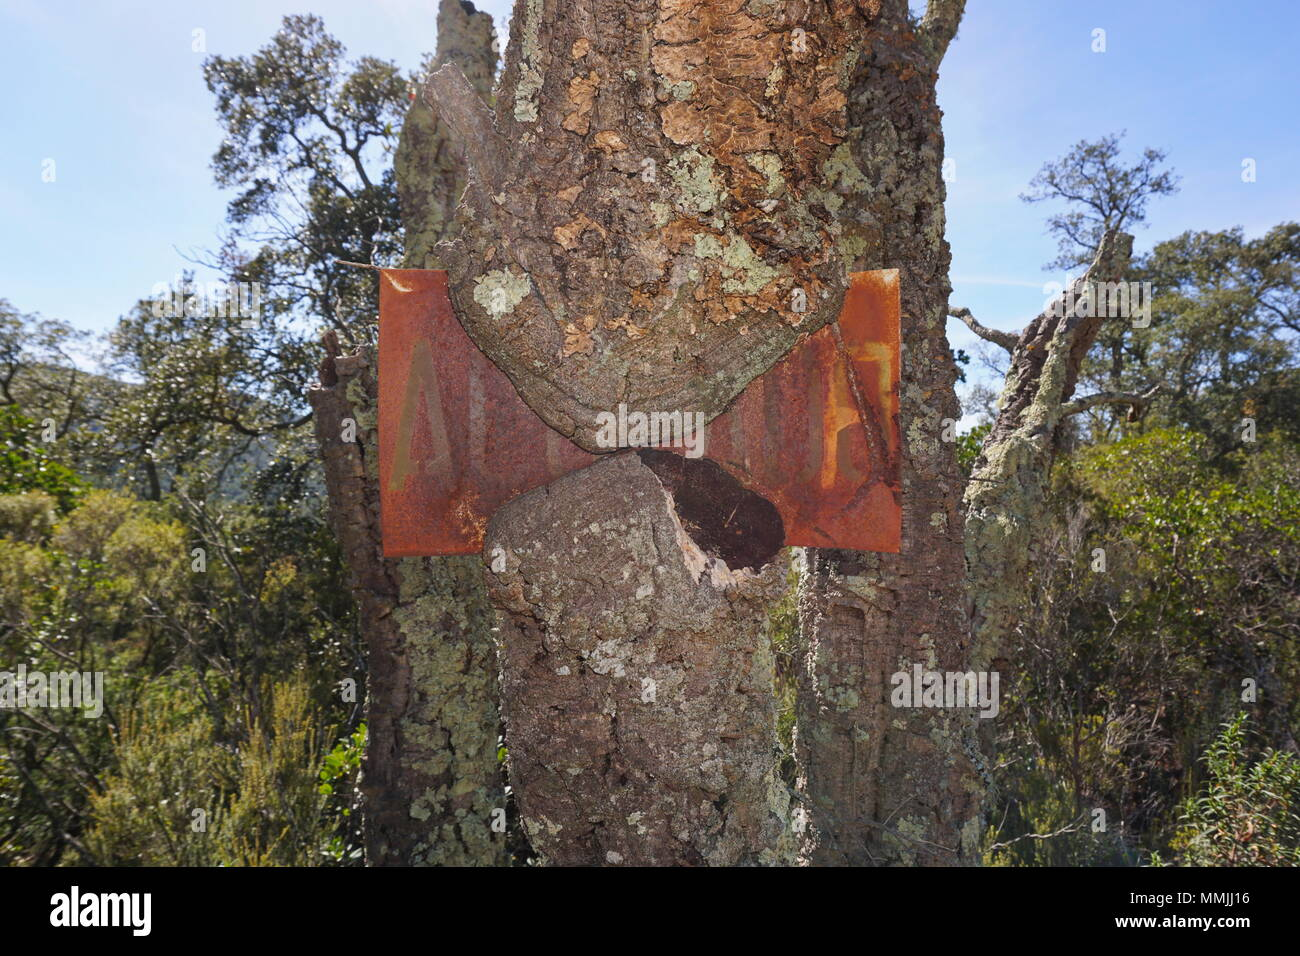 An old rusted metal sign engulfed by the growth of a cork oak tree, Darnius, Girona, Alt Emporda, Catalonia, Spain - Stock Image